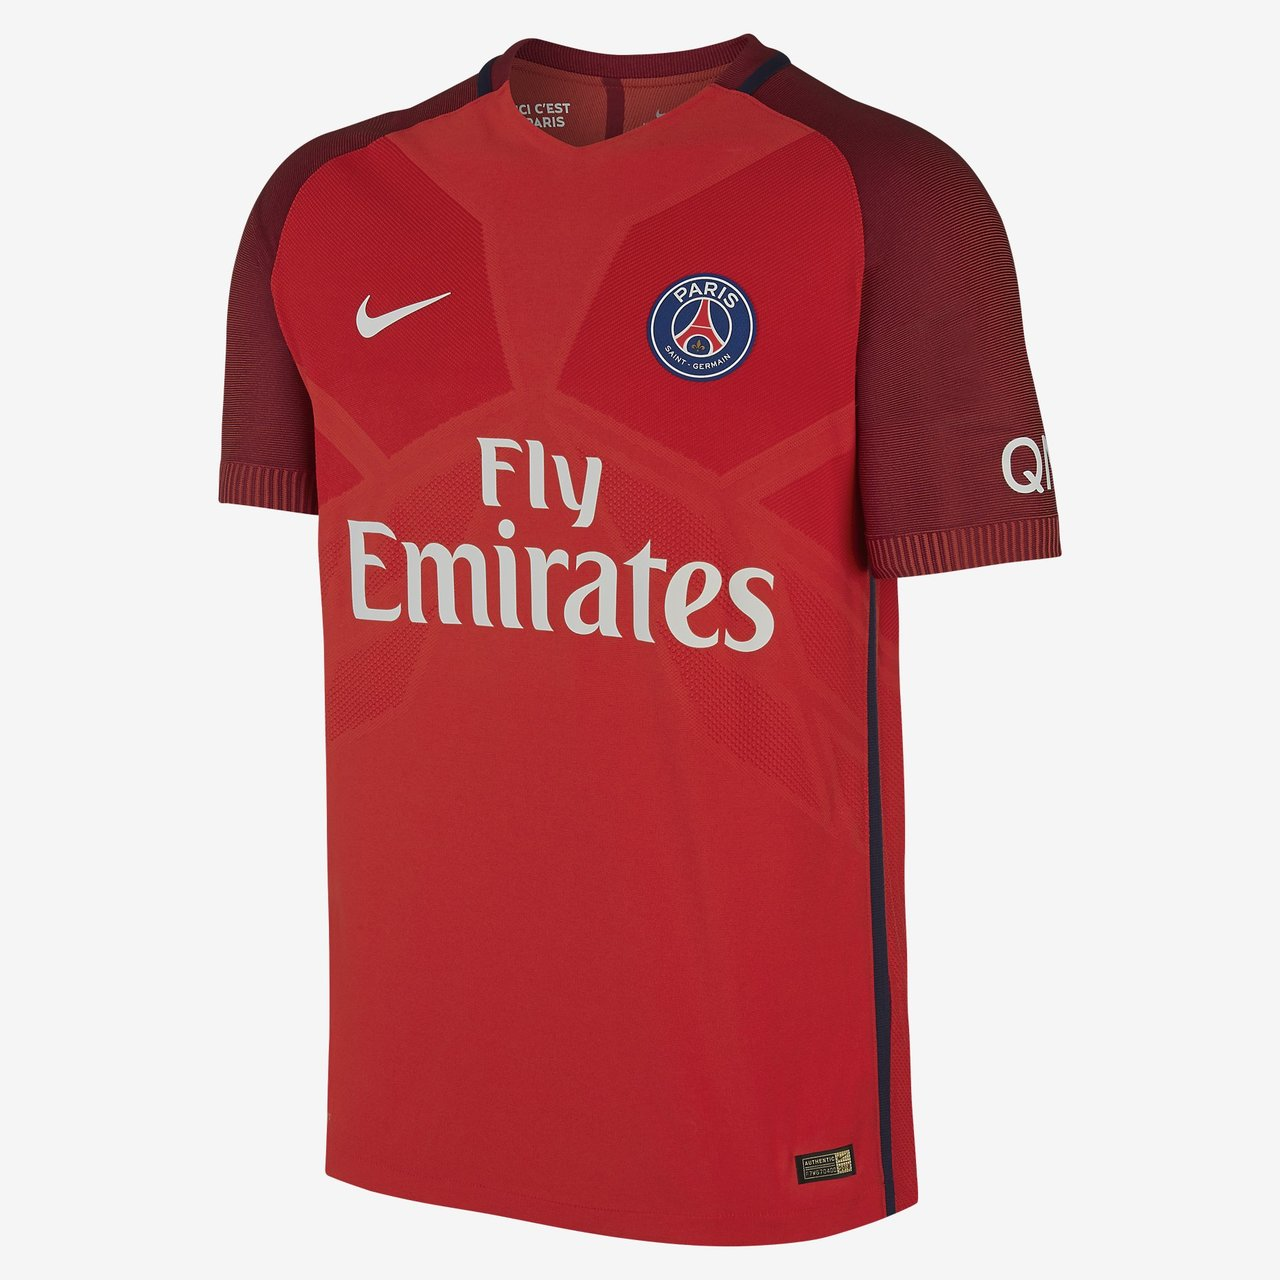 CAMISETA Paris Saint-Germain 16/17 SEGUNDA EQUIPACIÓN